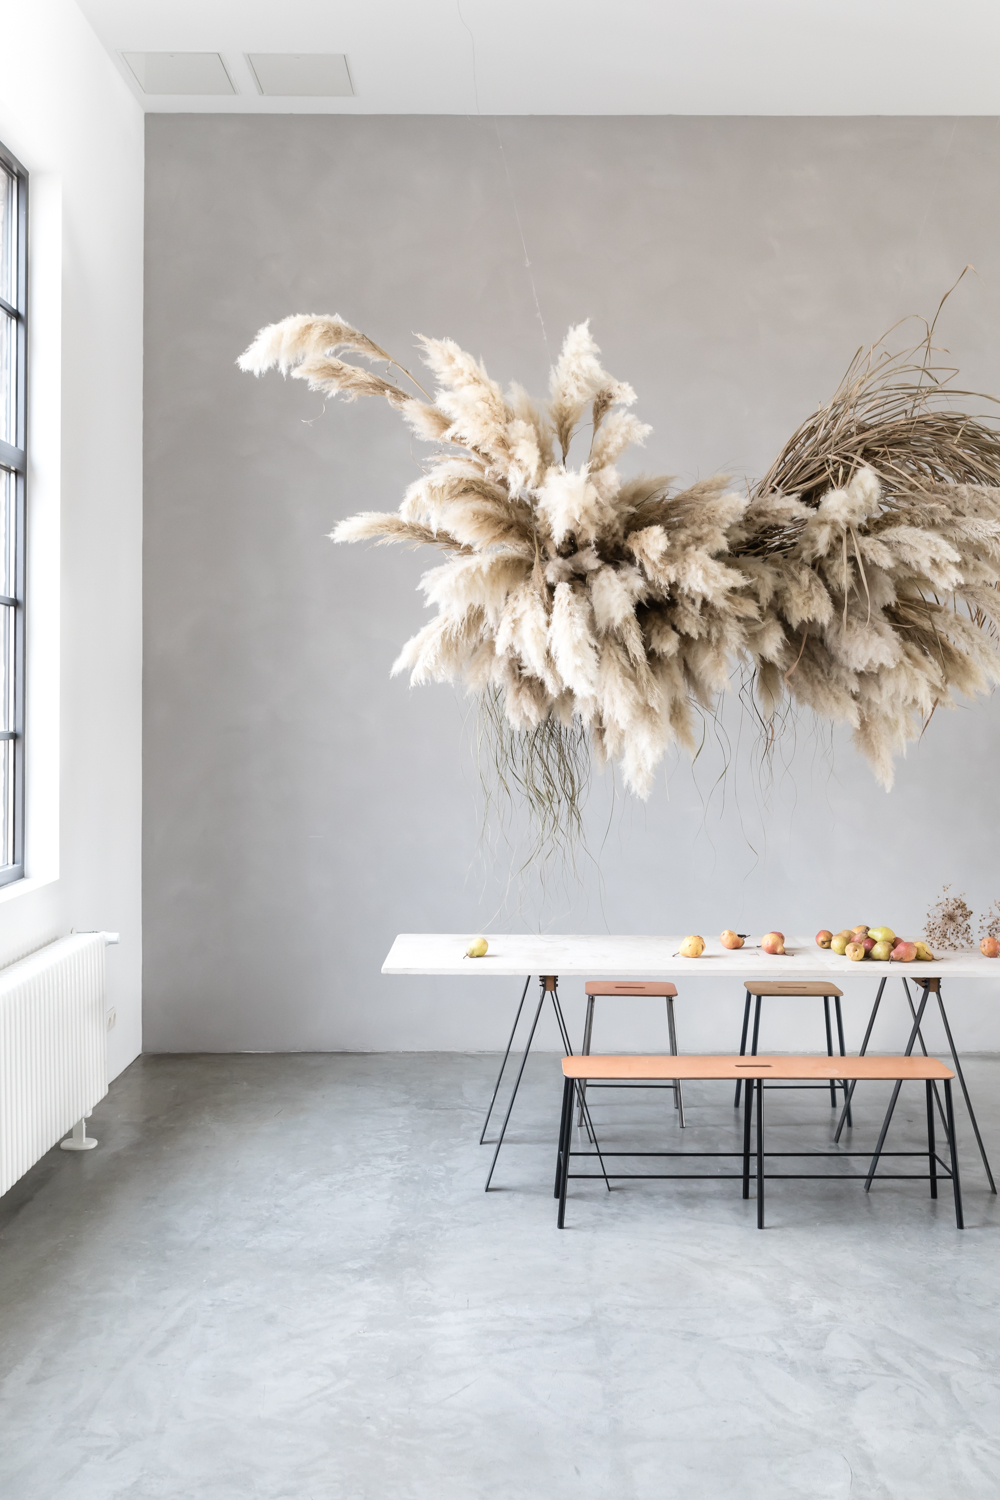 Dine under suspended billows of branches